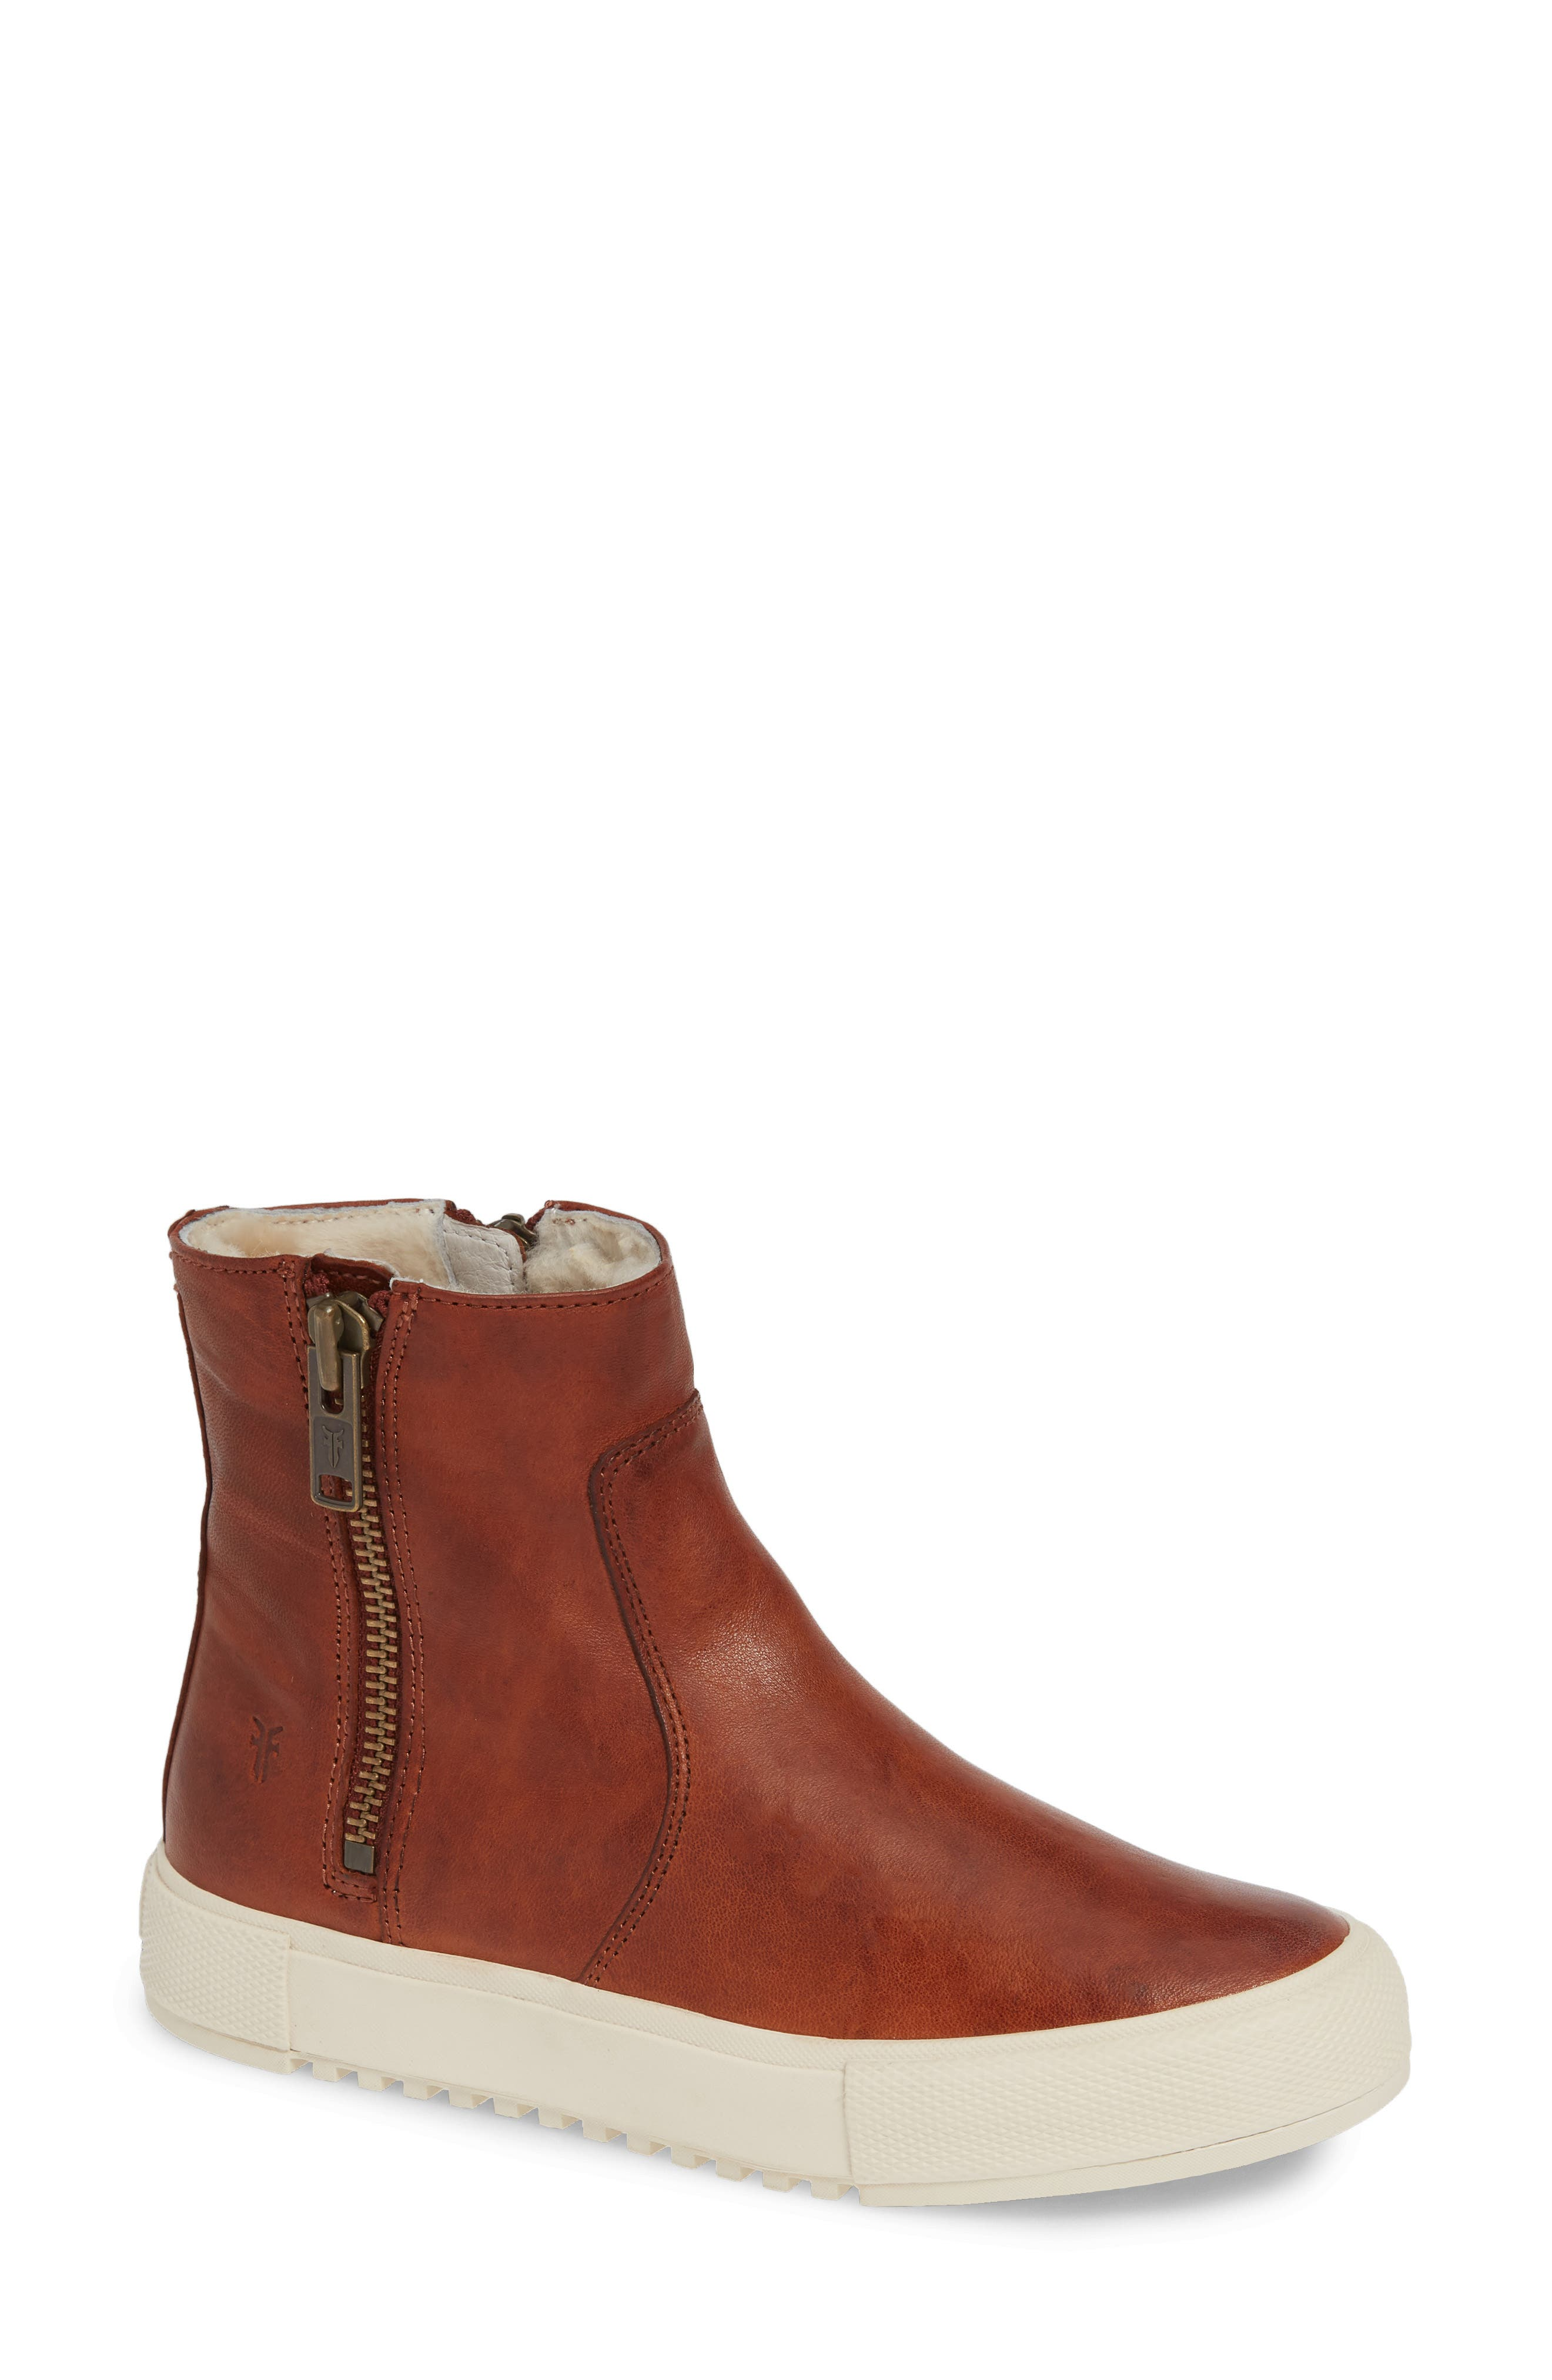 Frye Gia Genuine Shearling Lined Bootie, Brown